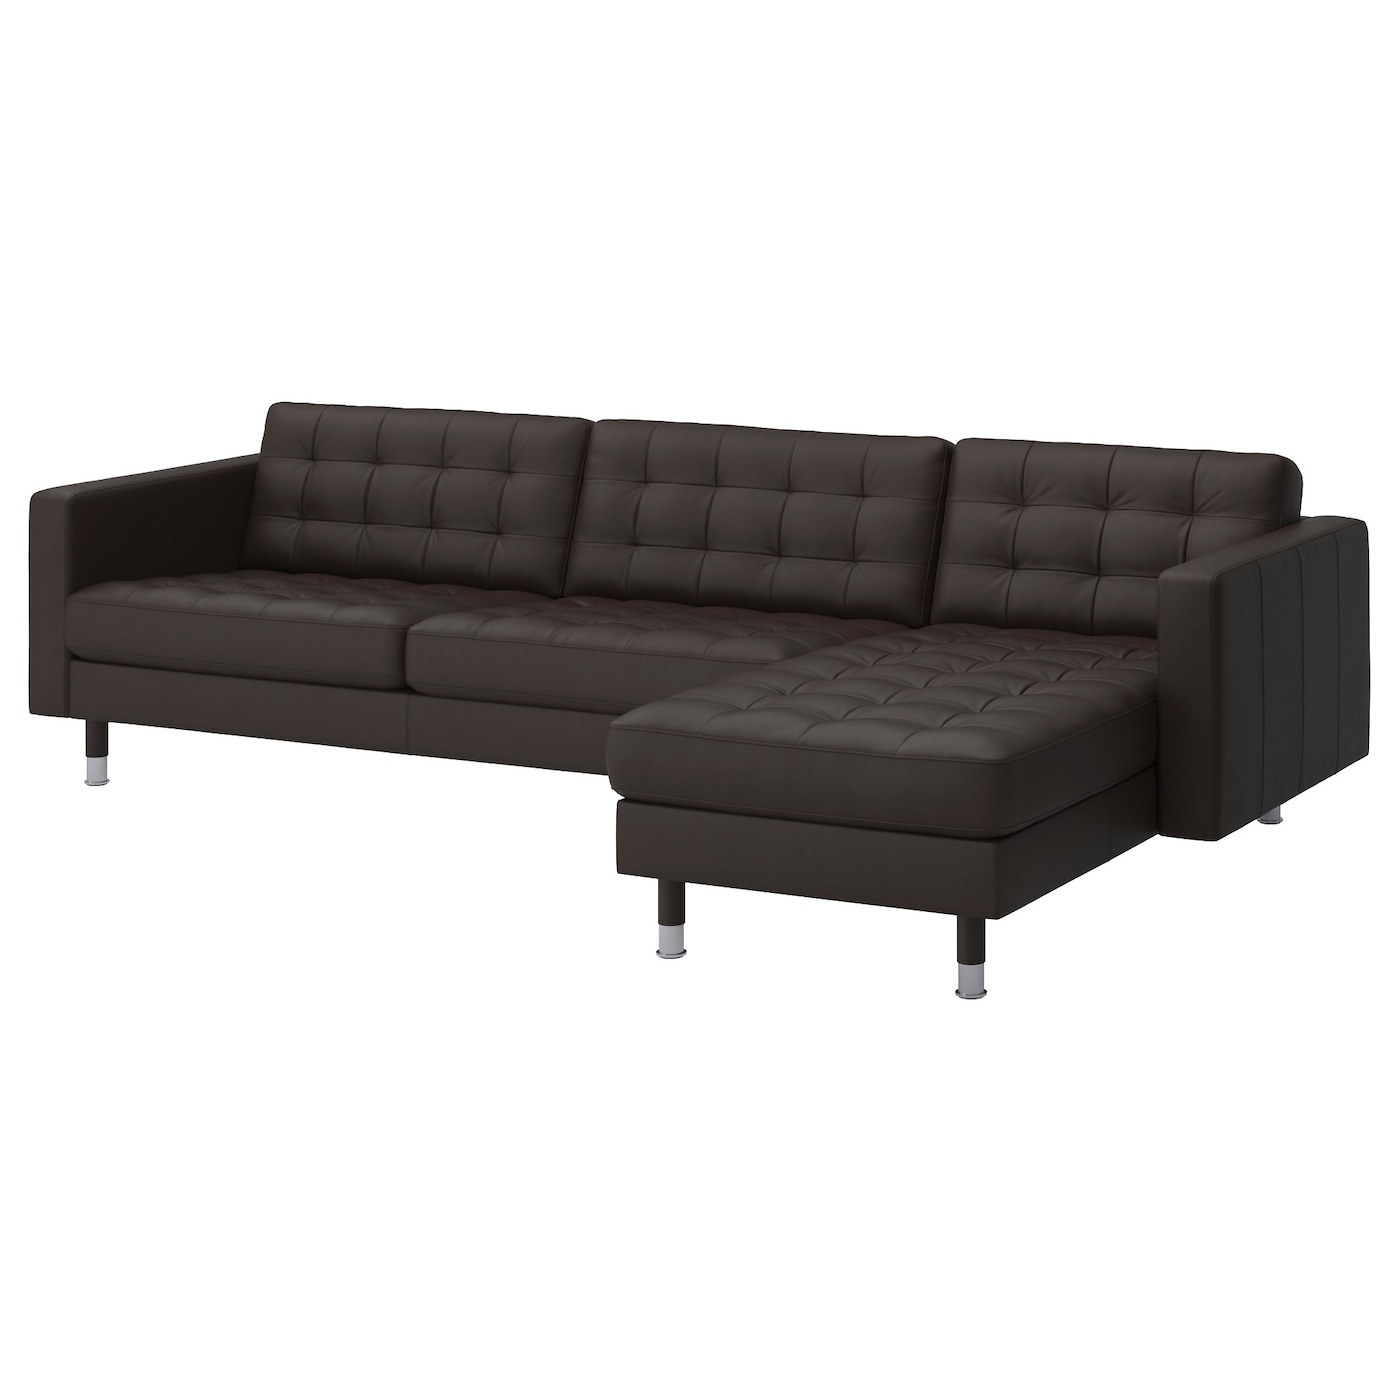 landskrona three seat sofa and chaise longue grann bomstad dark brown metal ikea. Black Bedroom Furniture Sets. Home Design Ideas